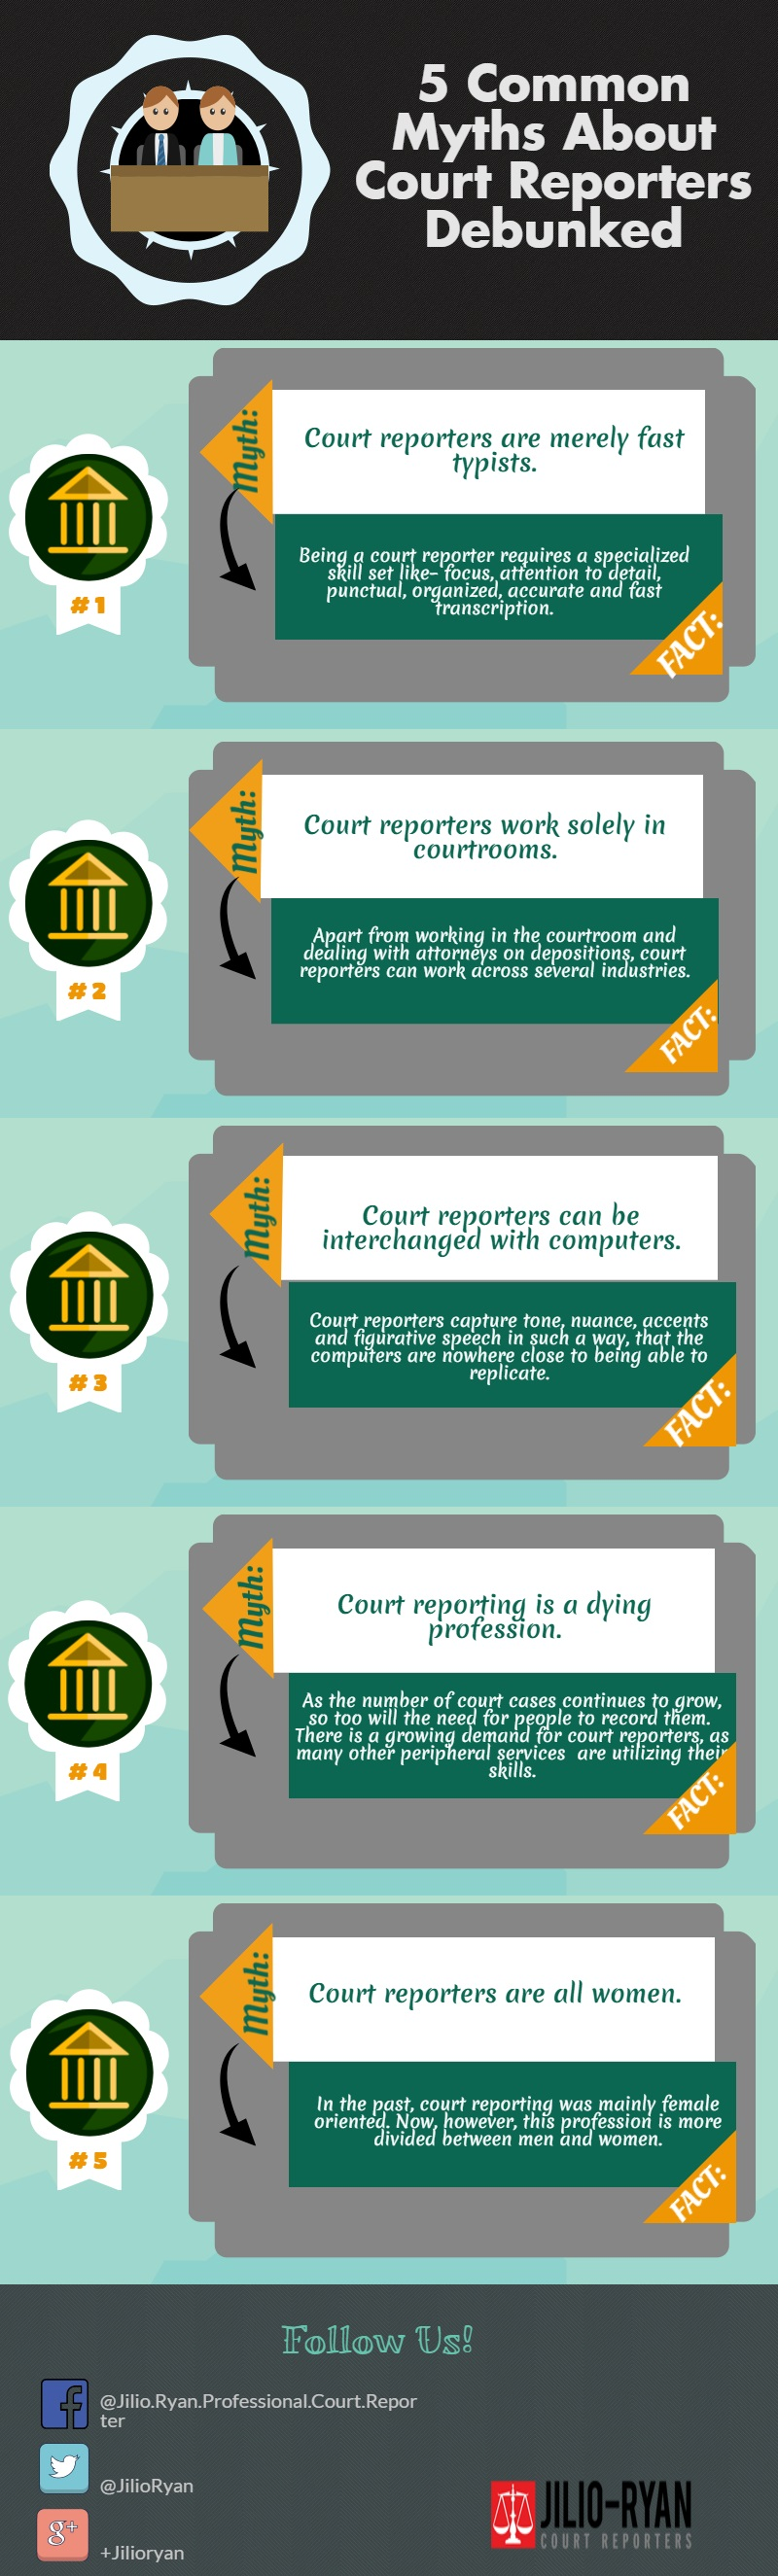 Common Myths About Court Reporters Debunked